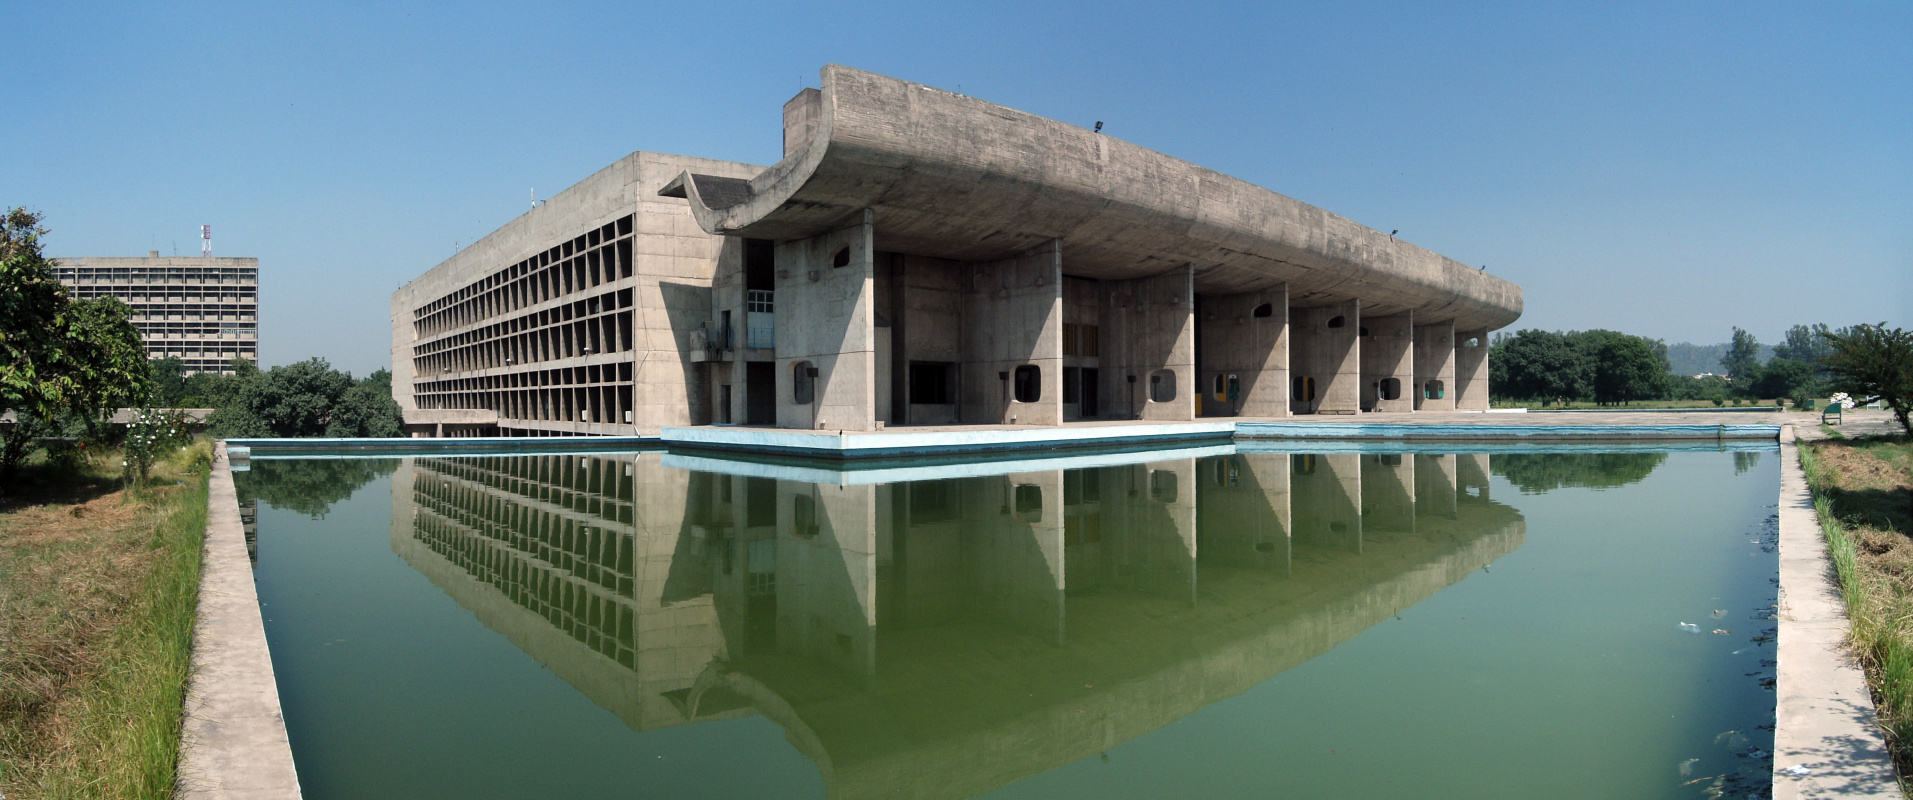 Le Corbusier. Chandigarh City